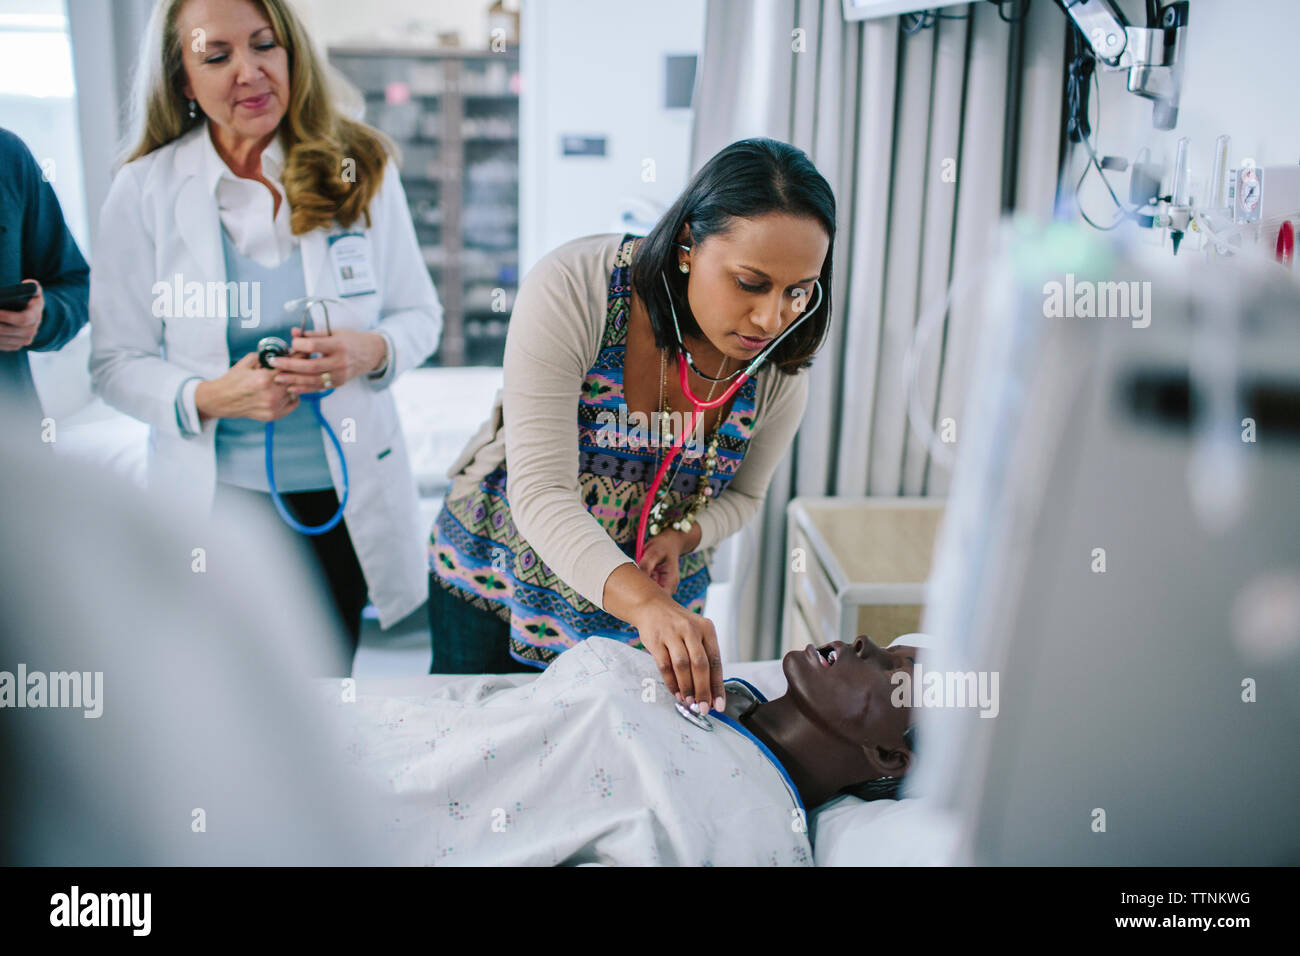 Female doctor training coworkers while examining mannequin in medical school - Stock Image